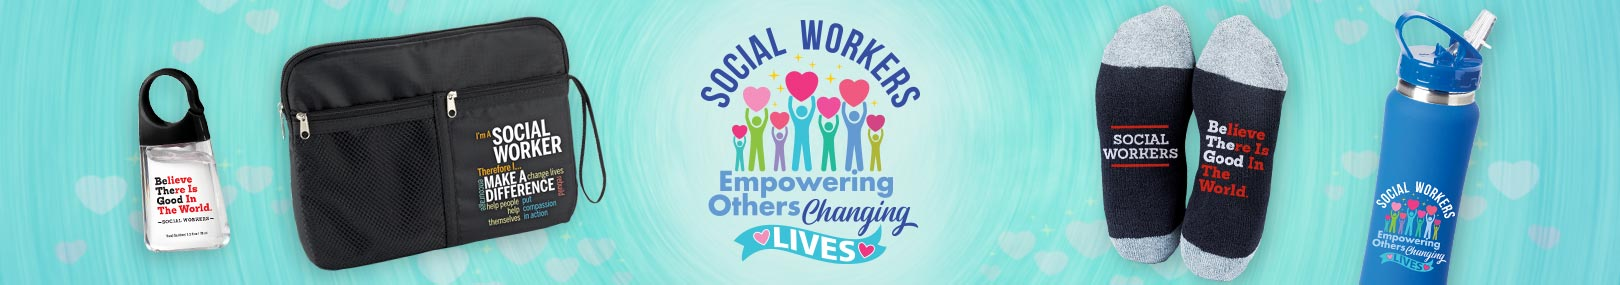 Social Worker Appreciation Gifts from Positive Promotions